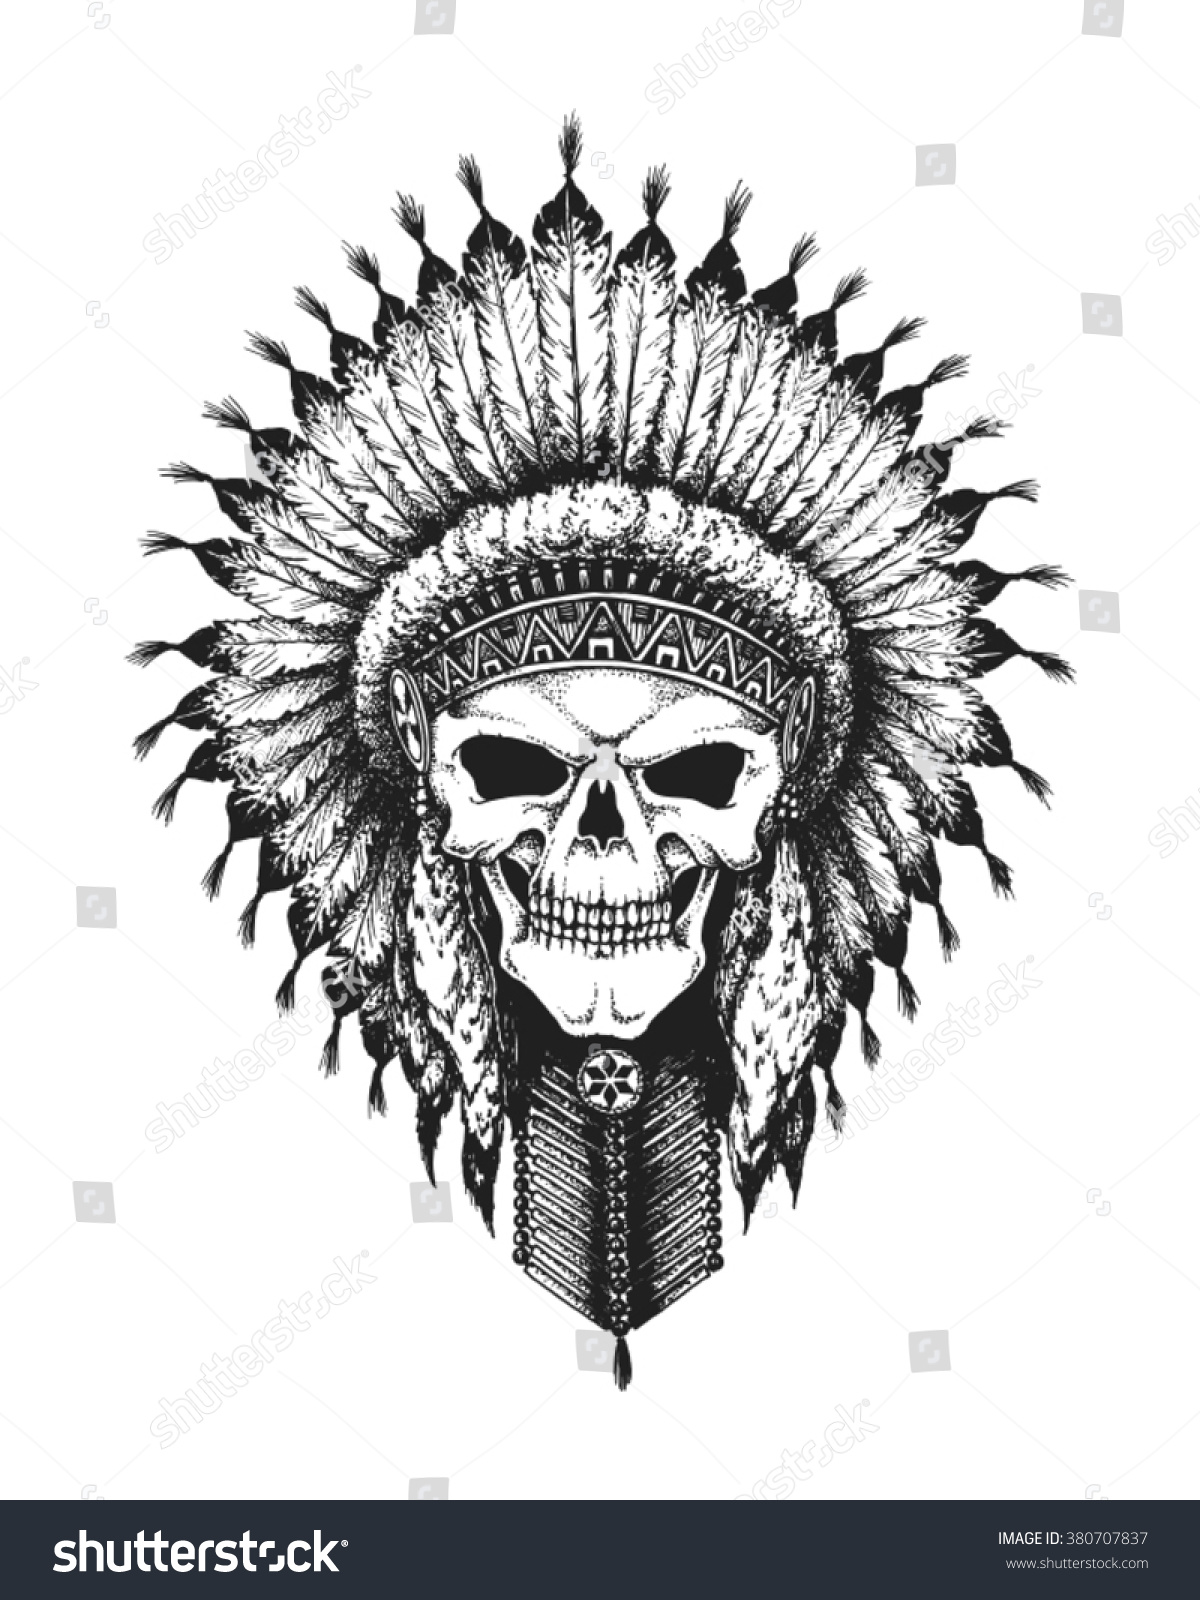 Hand Drawn Indian Chief Skull Wearing